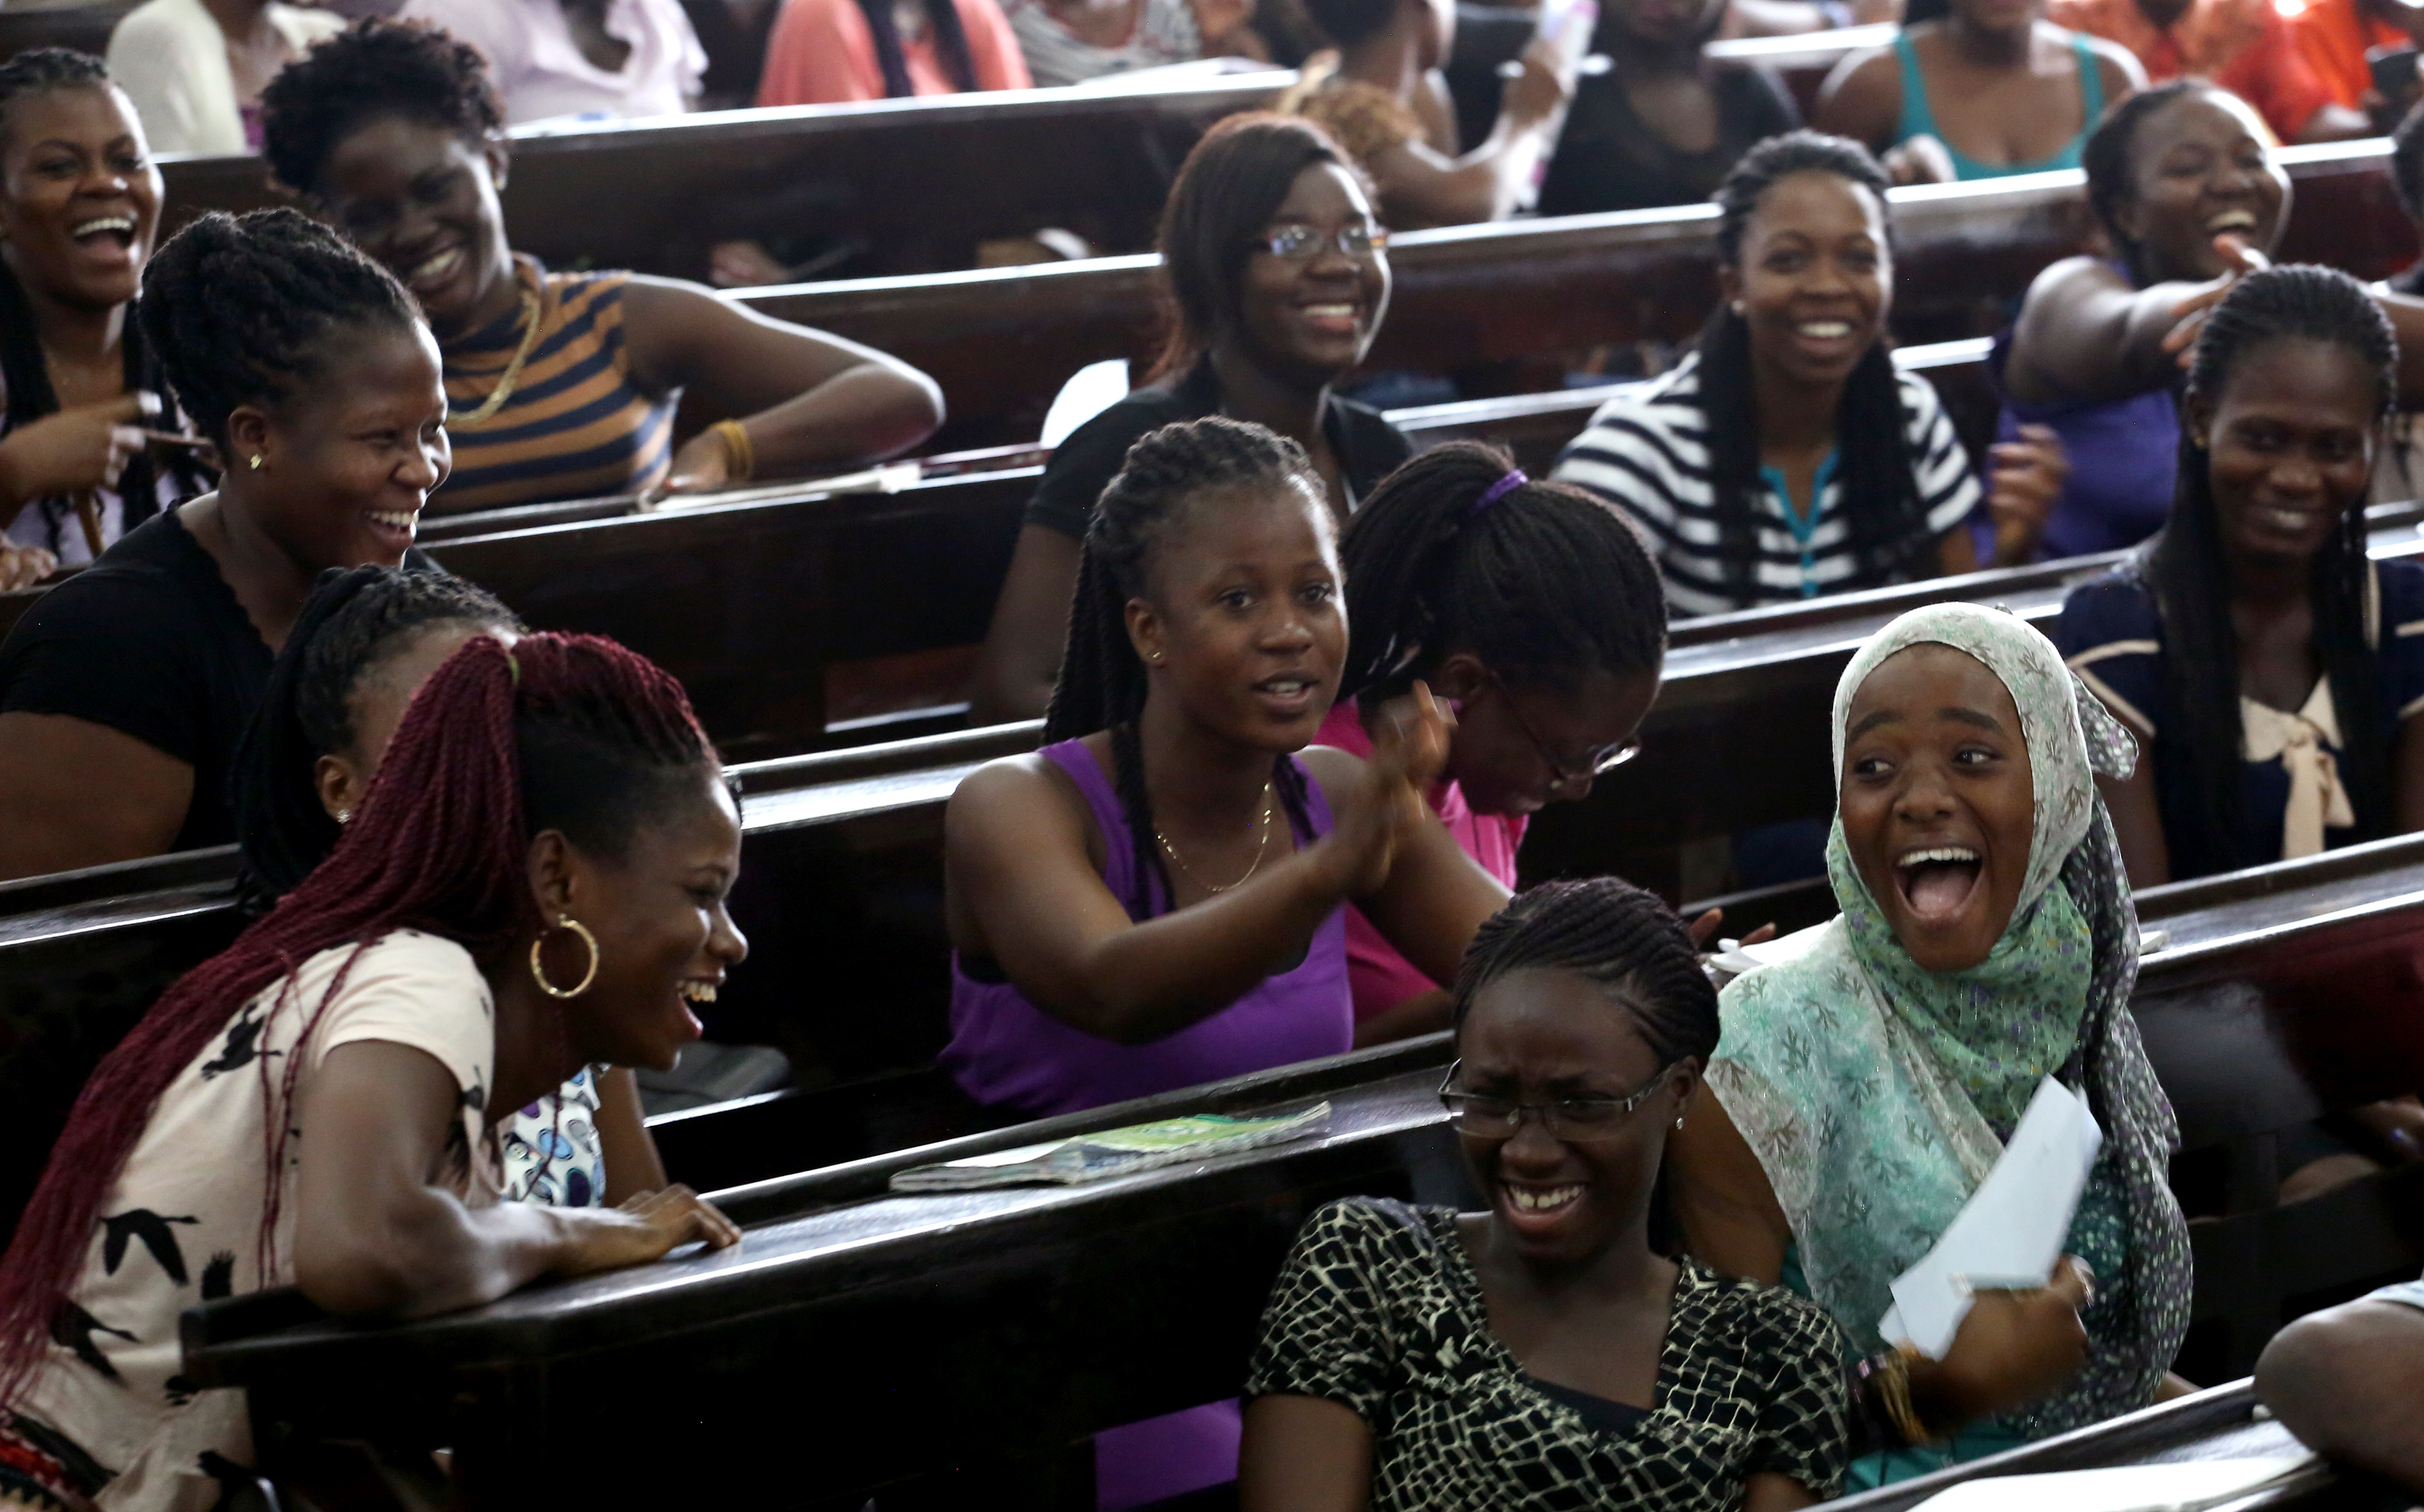 University of Ghana students laugh during a class lecture in Accra, Ghana on October 14, 2015. Photo © Dominic Chavez/World Bank